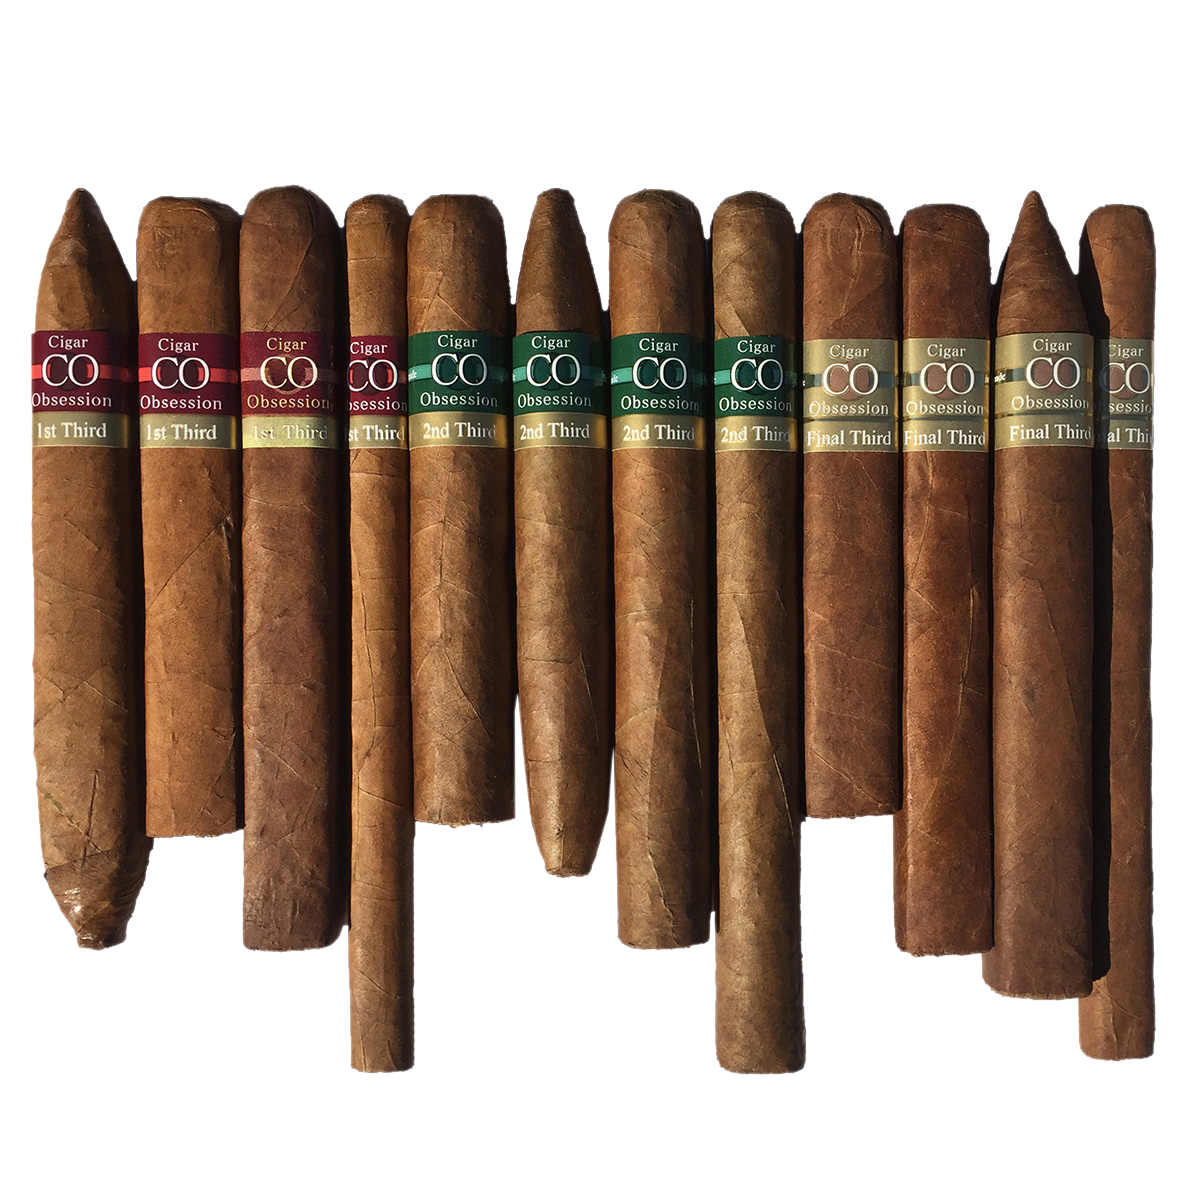 https://blancocigars.com/wp-content/uploads/2020/03/CO-all-full.png